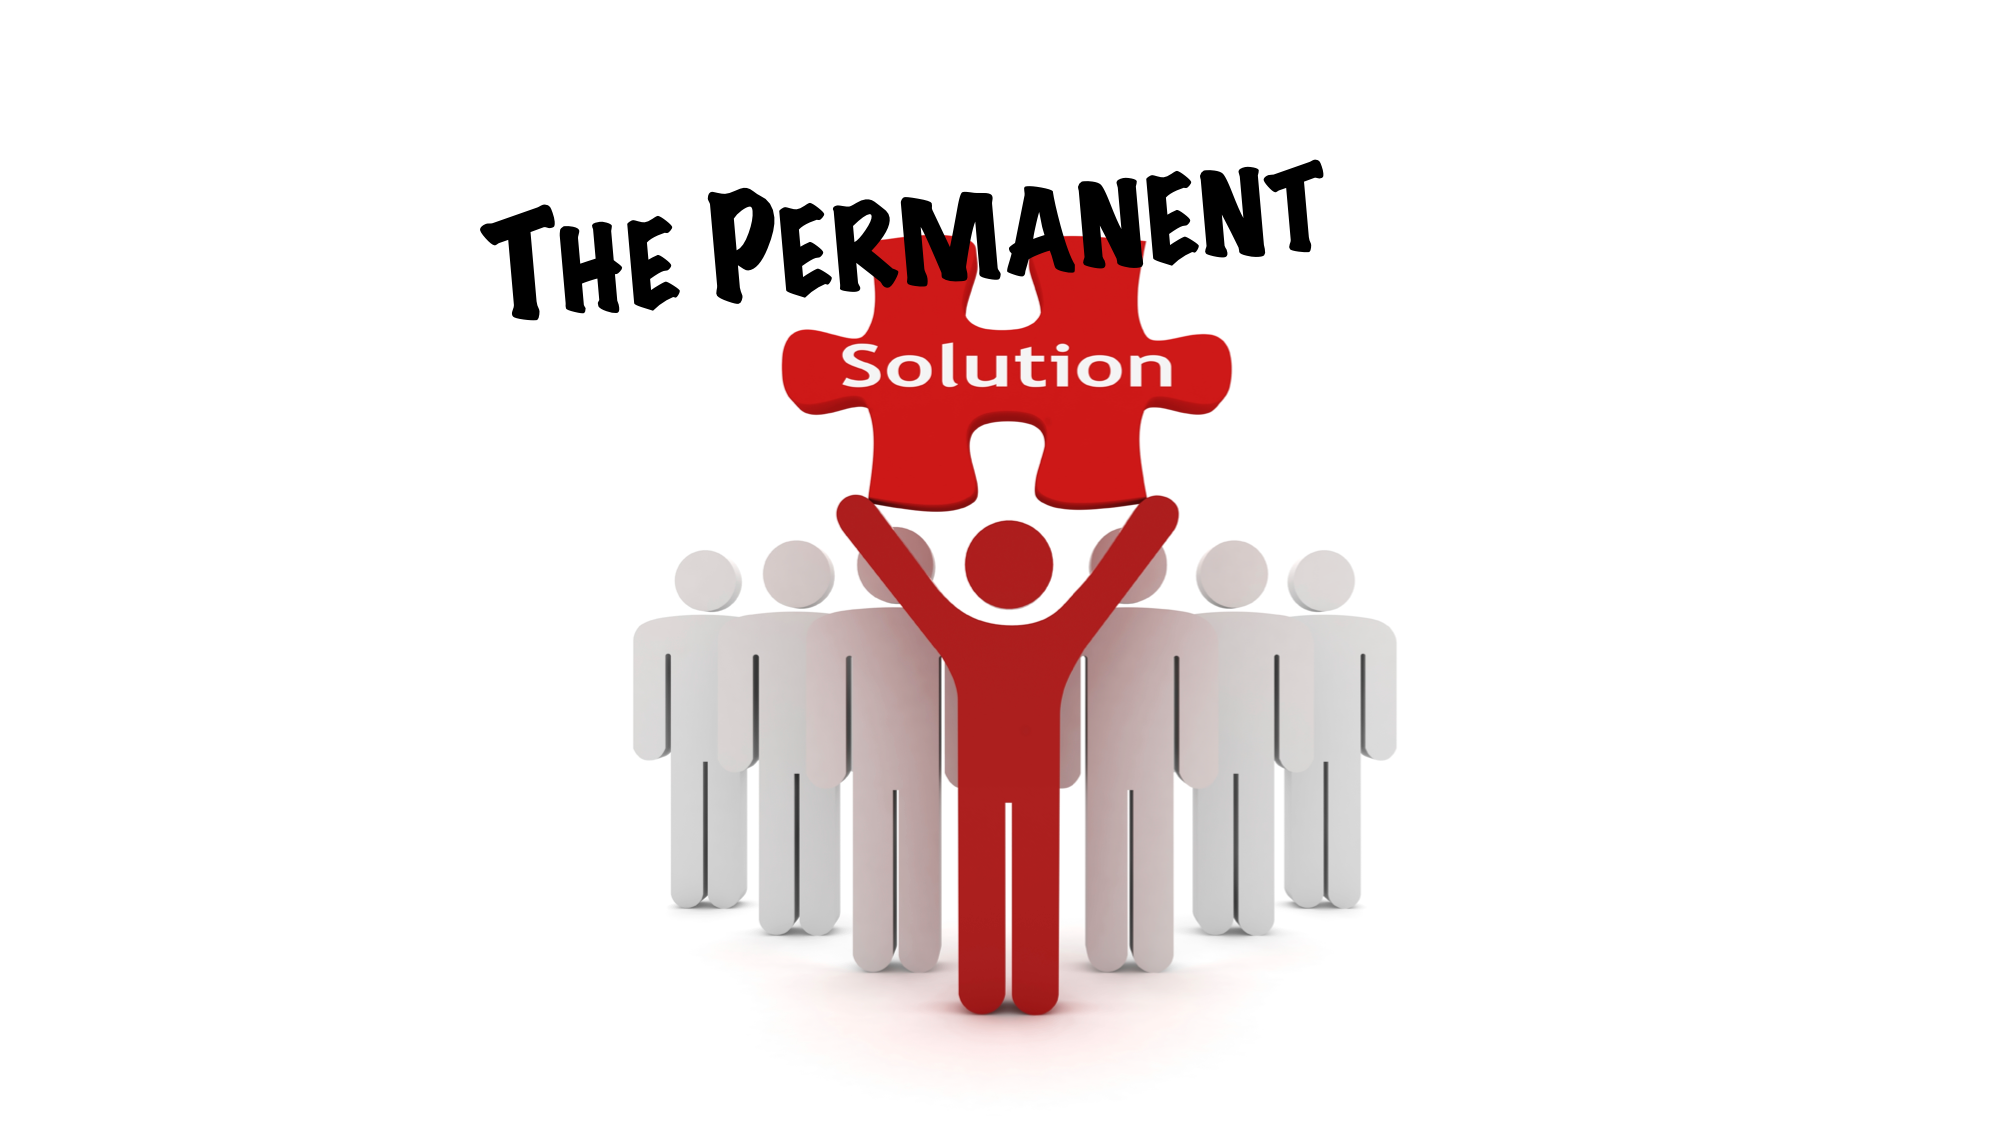 The Permanent Solution